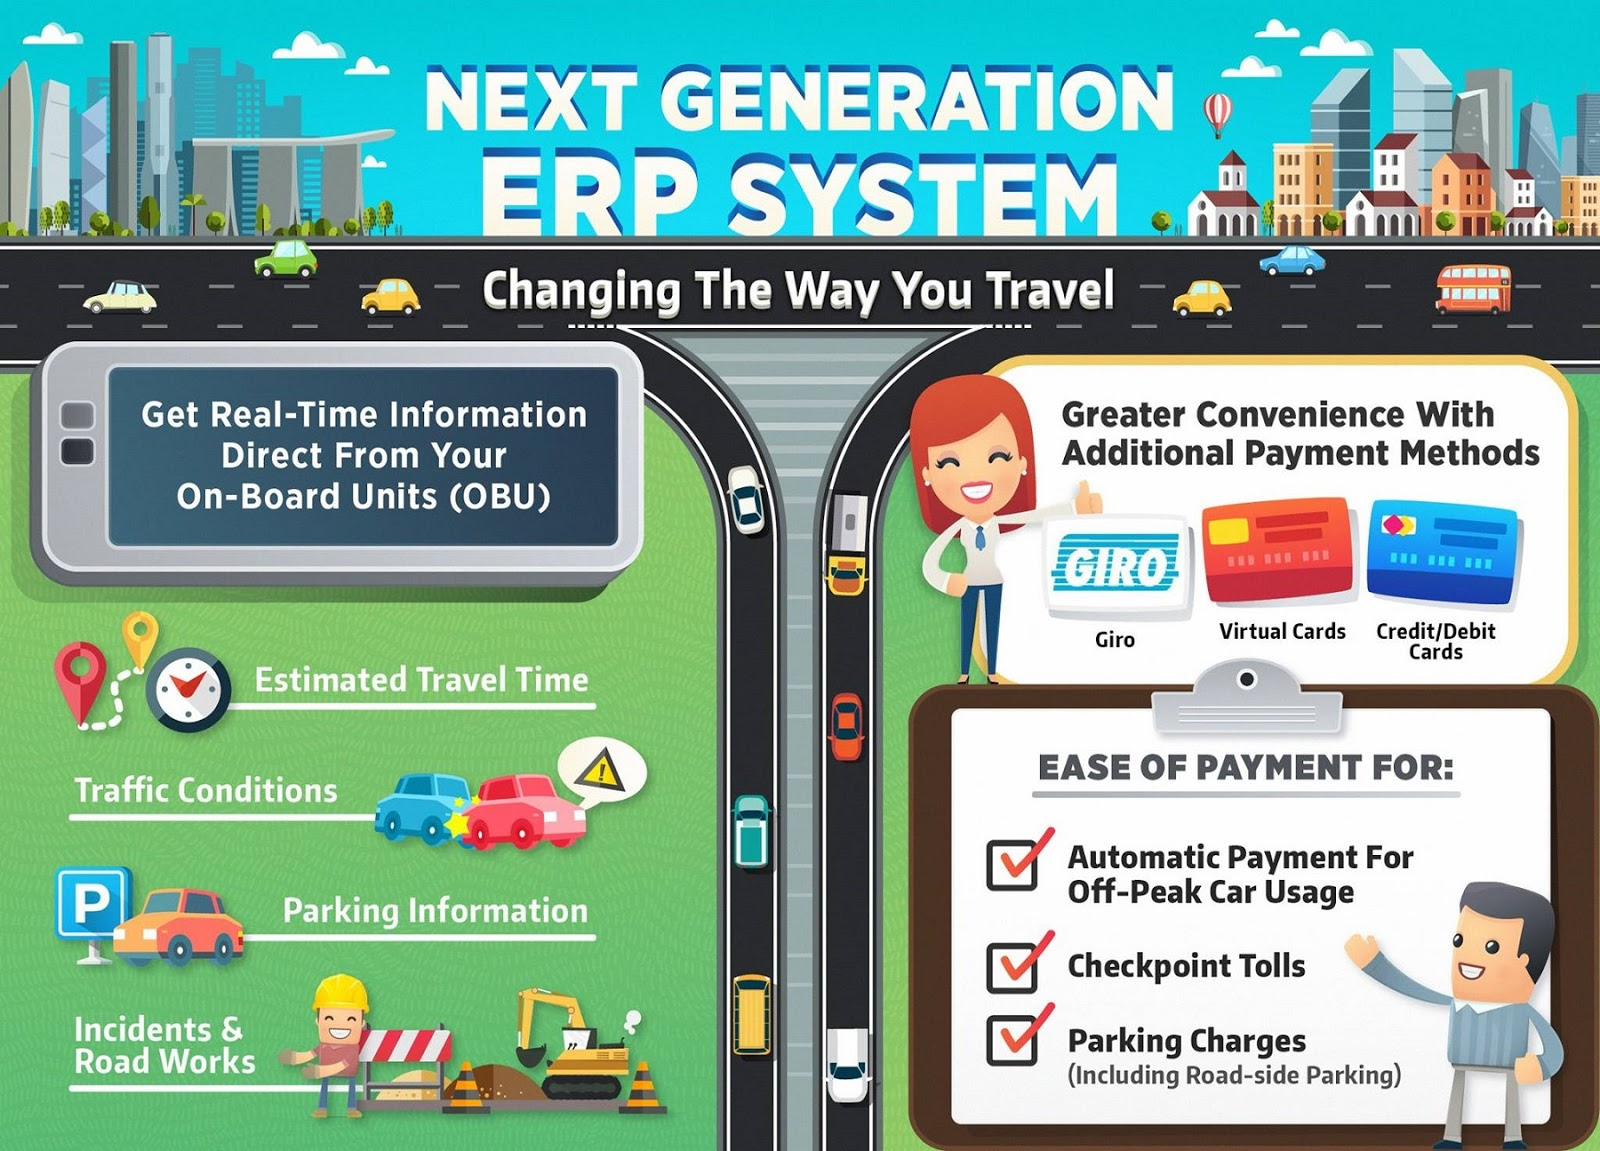 new implimentation of erp system at 9 tips for selecting and implementing an erp system  by companies during erp implementation is spending significant time, energy and money selecting the right software and implementation.